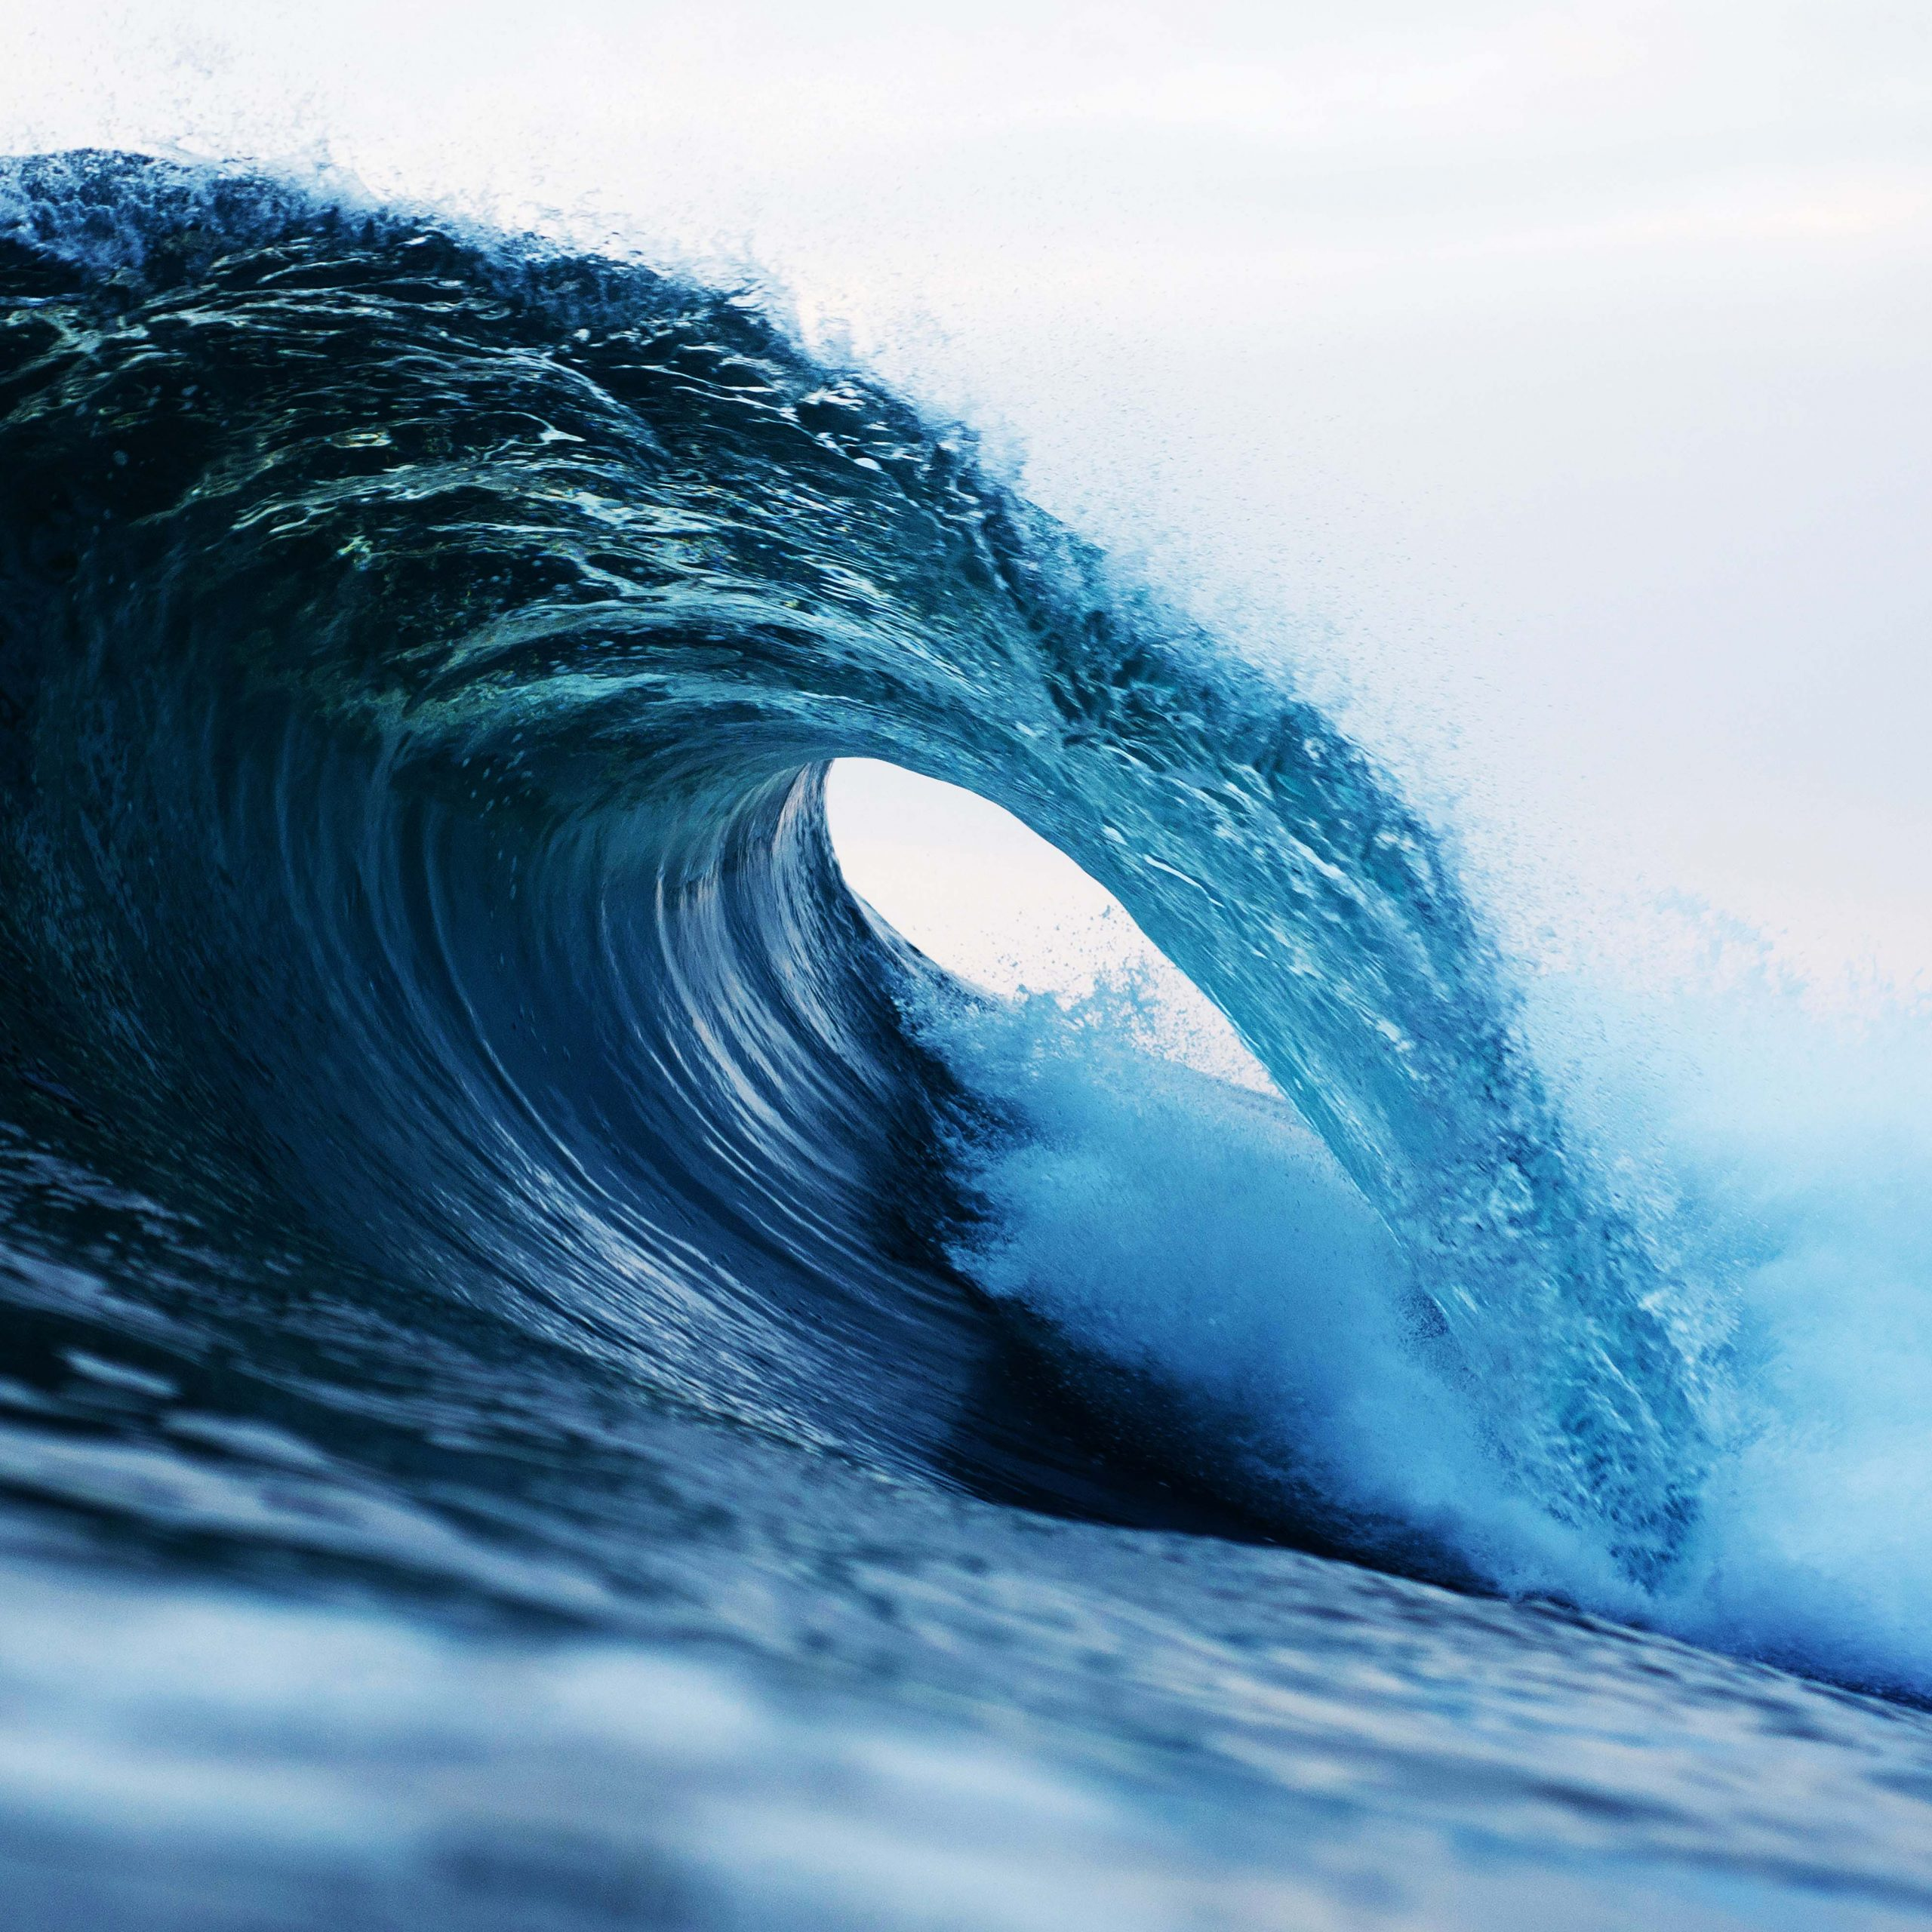 barrel-wave-motion-nature-1298684